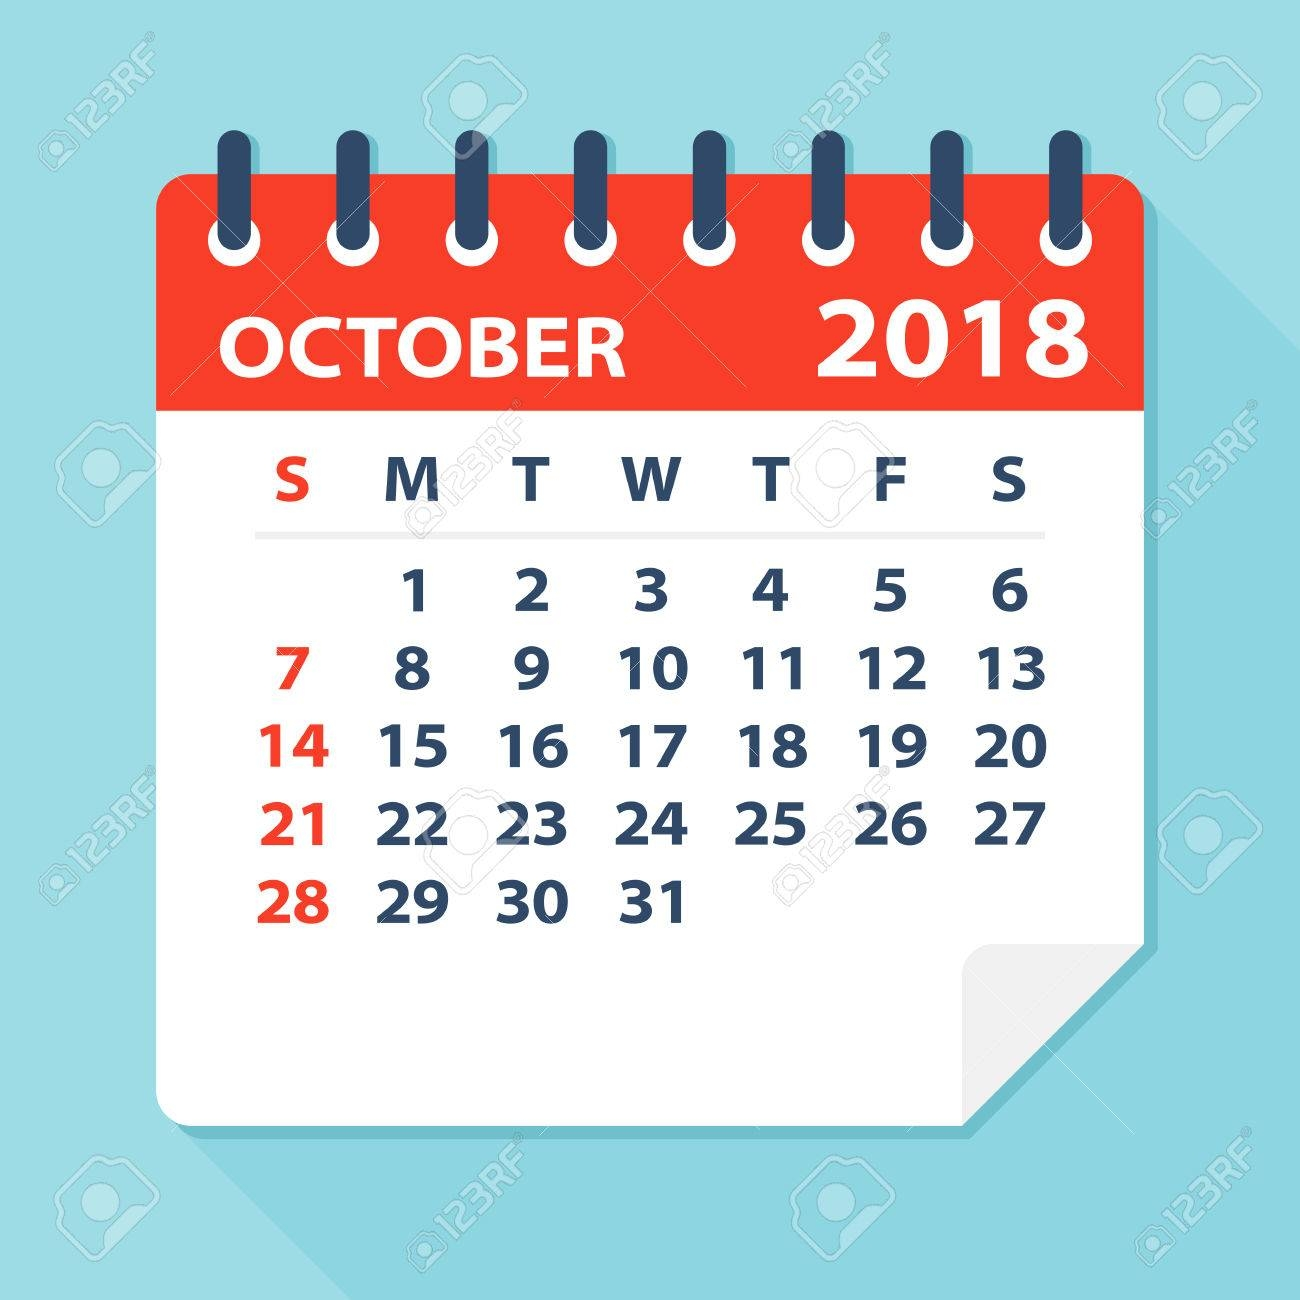 october 2018 calendar leaf flat vector illustration royalty free October 2018 Calendar Free erdferdf